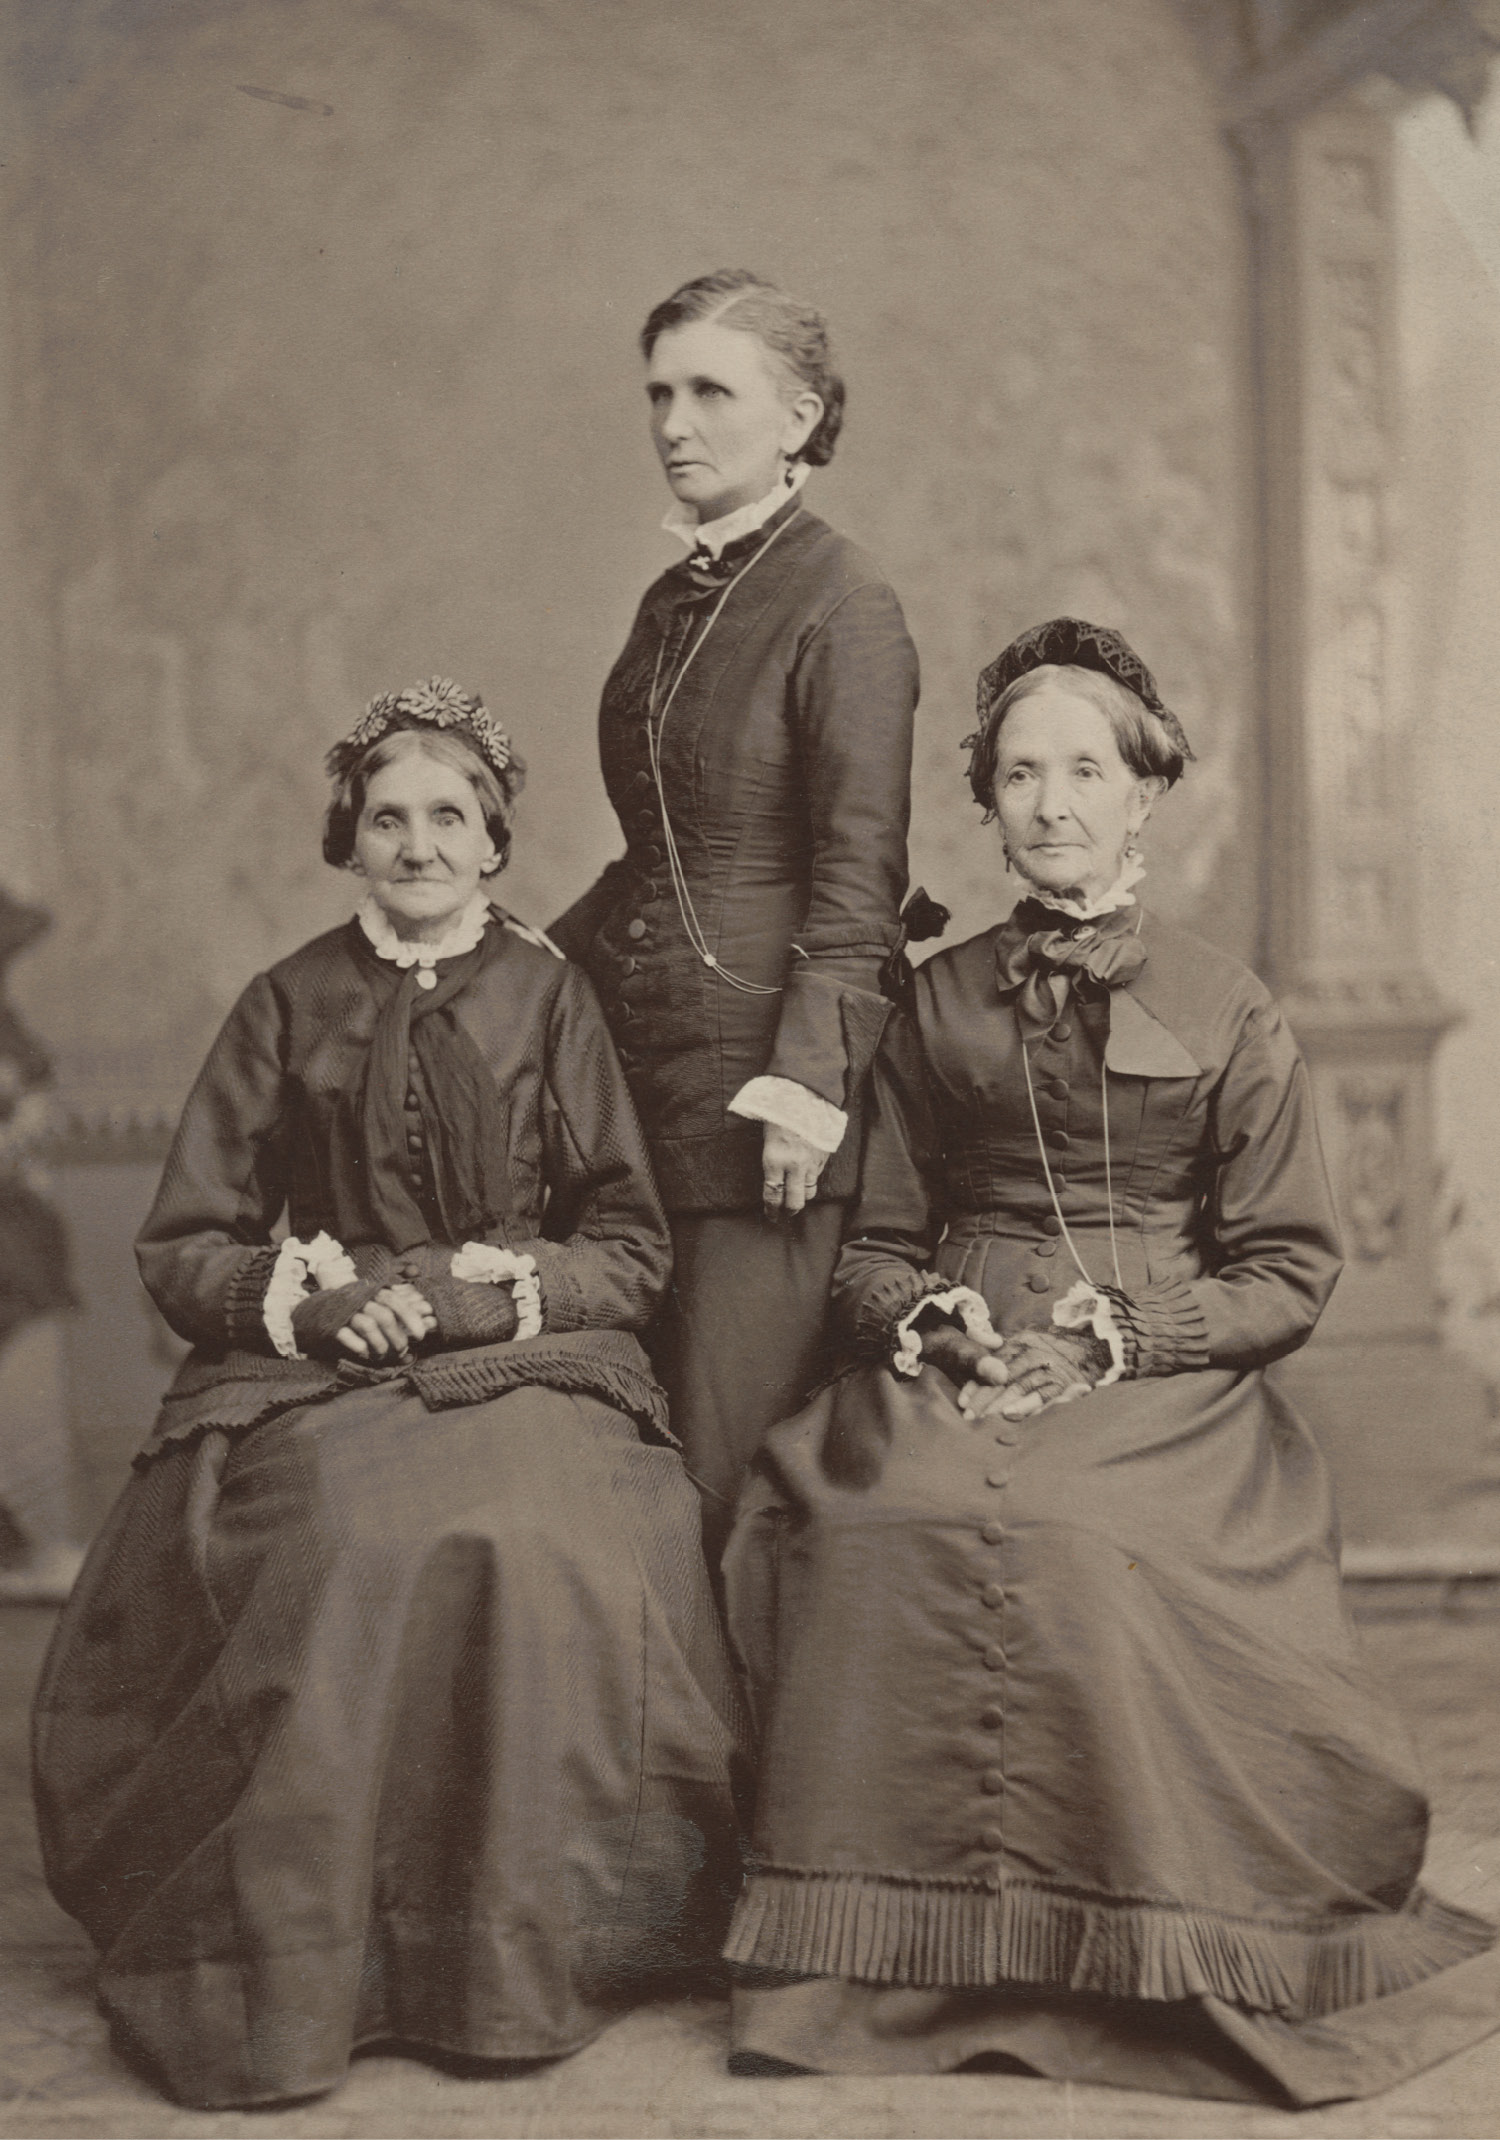 Elizabeth Ann Whitney, Emmeline B. Wells, and Eliza R. Snow. Circa 1876. Whitney, left, and Snow, right, were members of the Nauvoo Relief Society and served together when the general board of the Re- lief Society was organized in 1880. Emmeline B. Wells, center, edited the Woman's Exponent and worked as the general secretary and then general president of the Relief Society in later years. These three women traveled often to speak to different congregations. Photograph by Charles R. Savage.